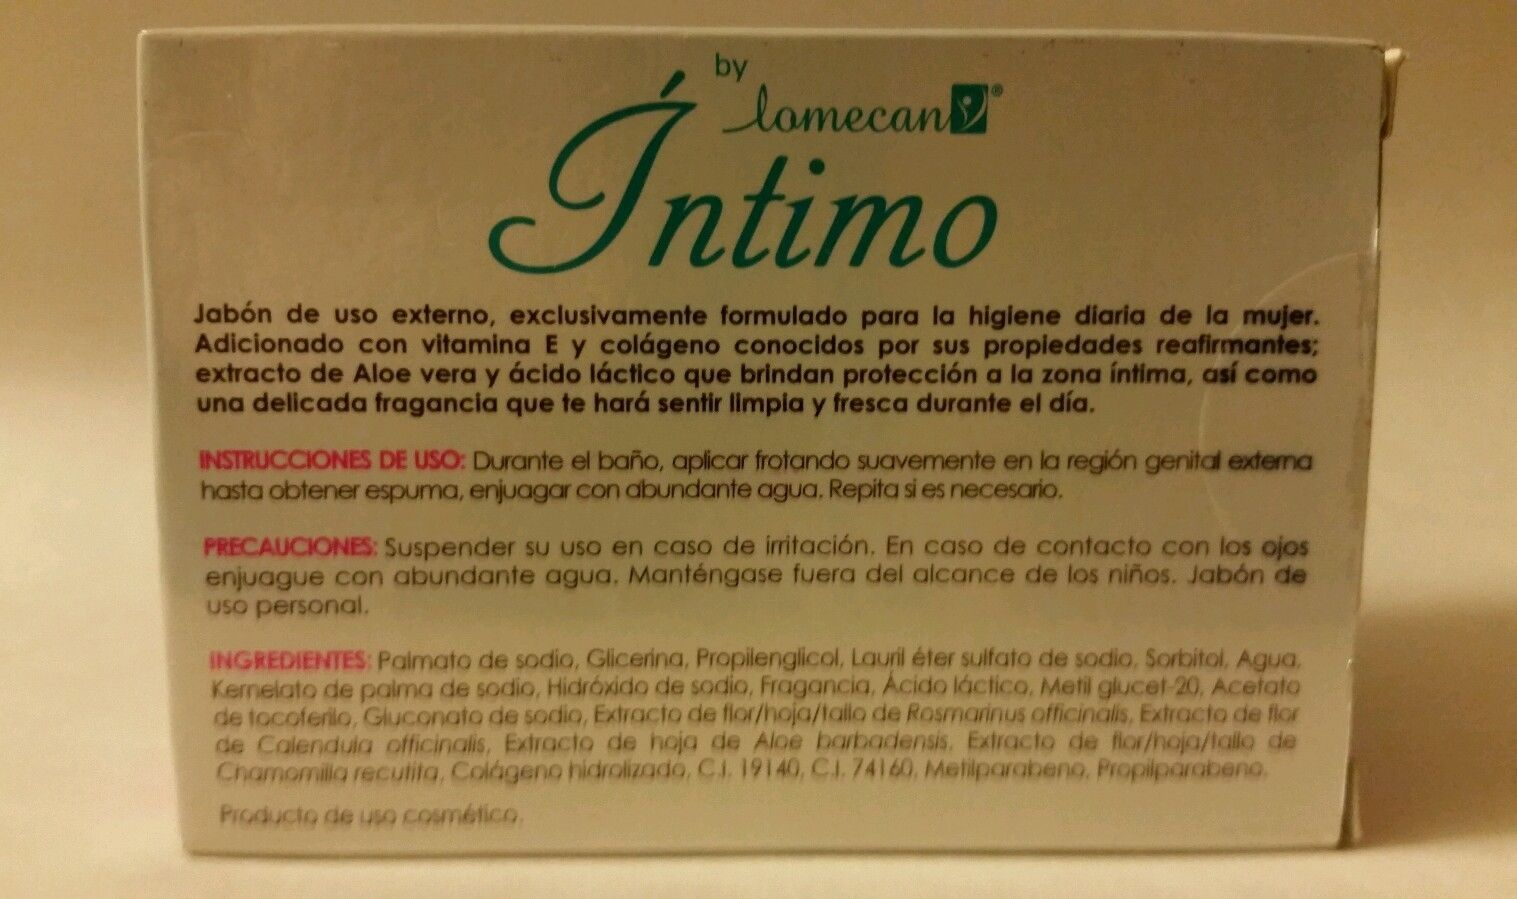 LOMECAN Intimo {Firming///REAFIRMANTE } Soap///Jabon 2 x 100g { 2 Bars of soap } image 3